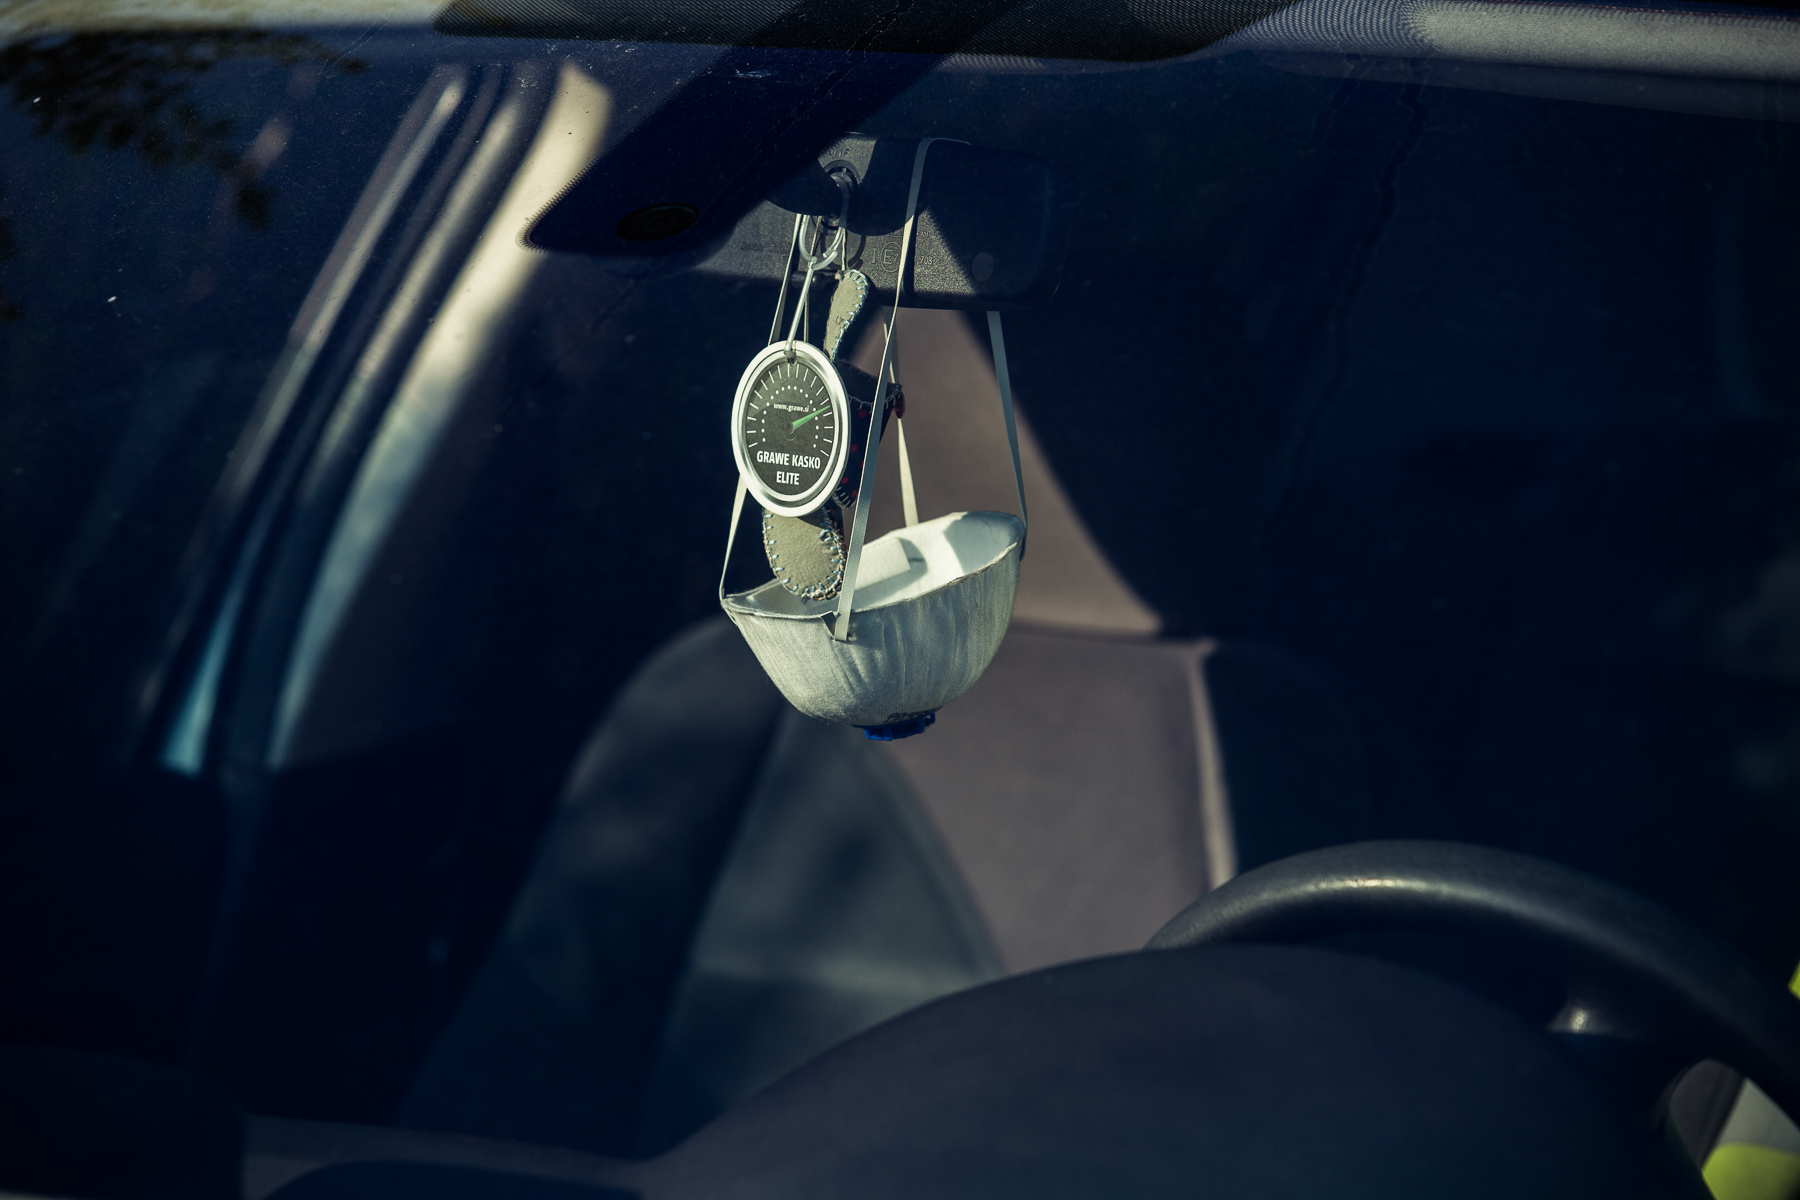 A protective mask hangs from a rear view mirror of a car in Kranj, Slovenia, on April 10, 2020.